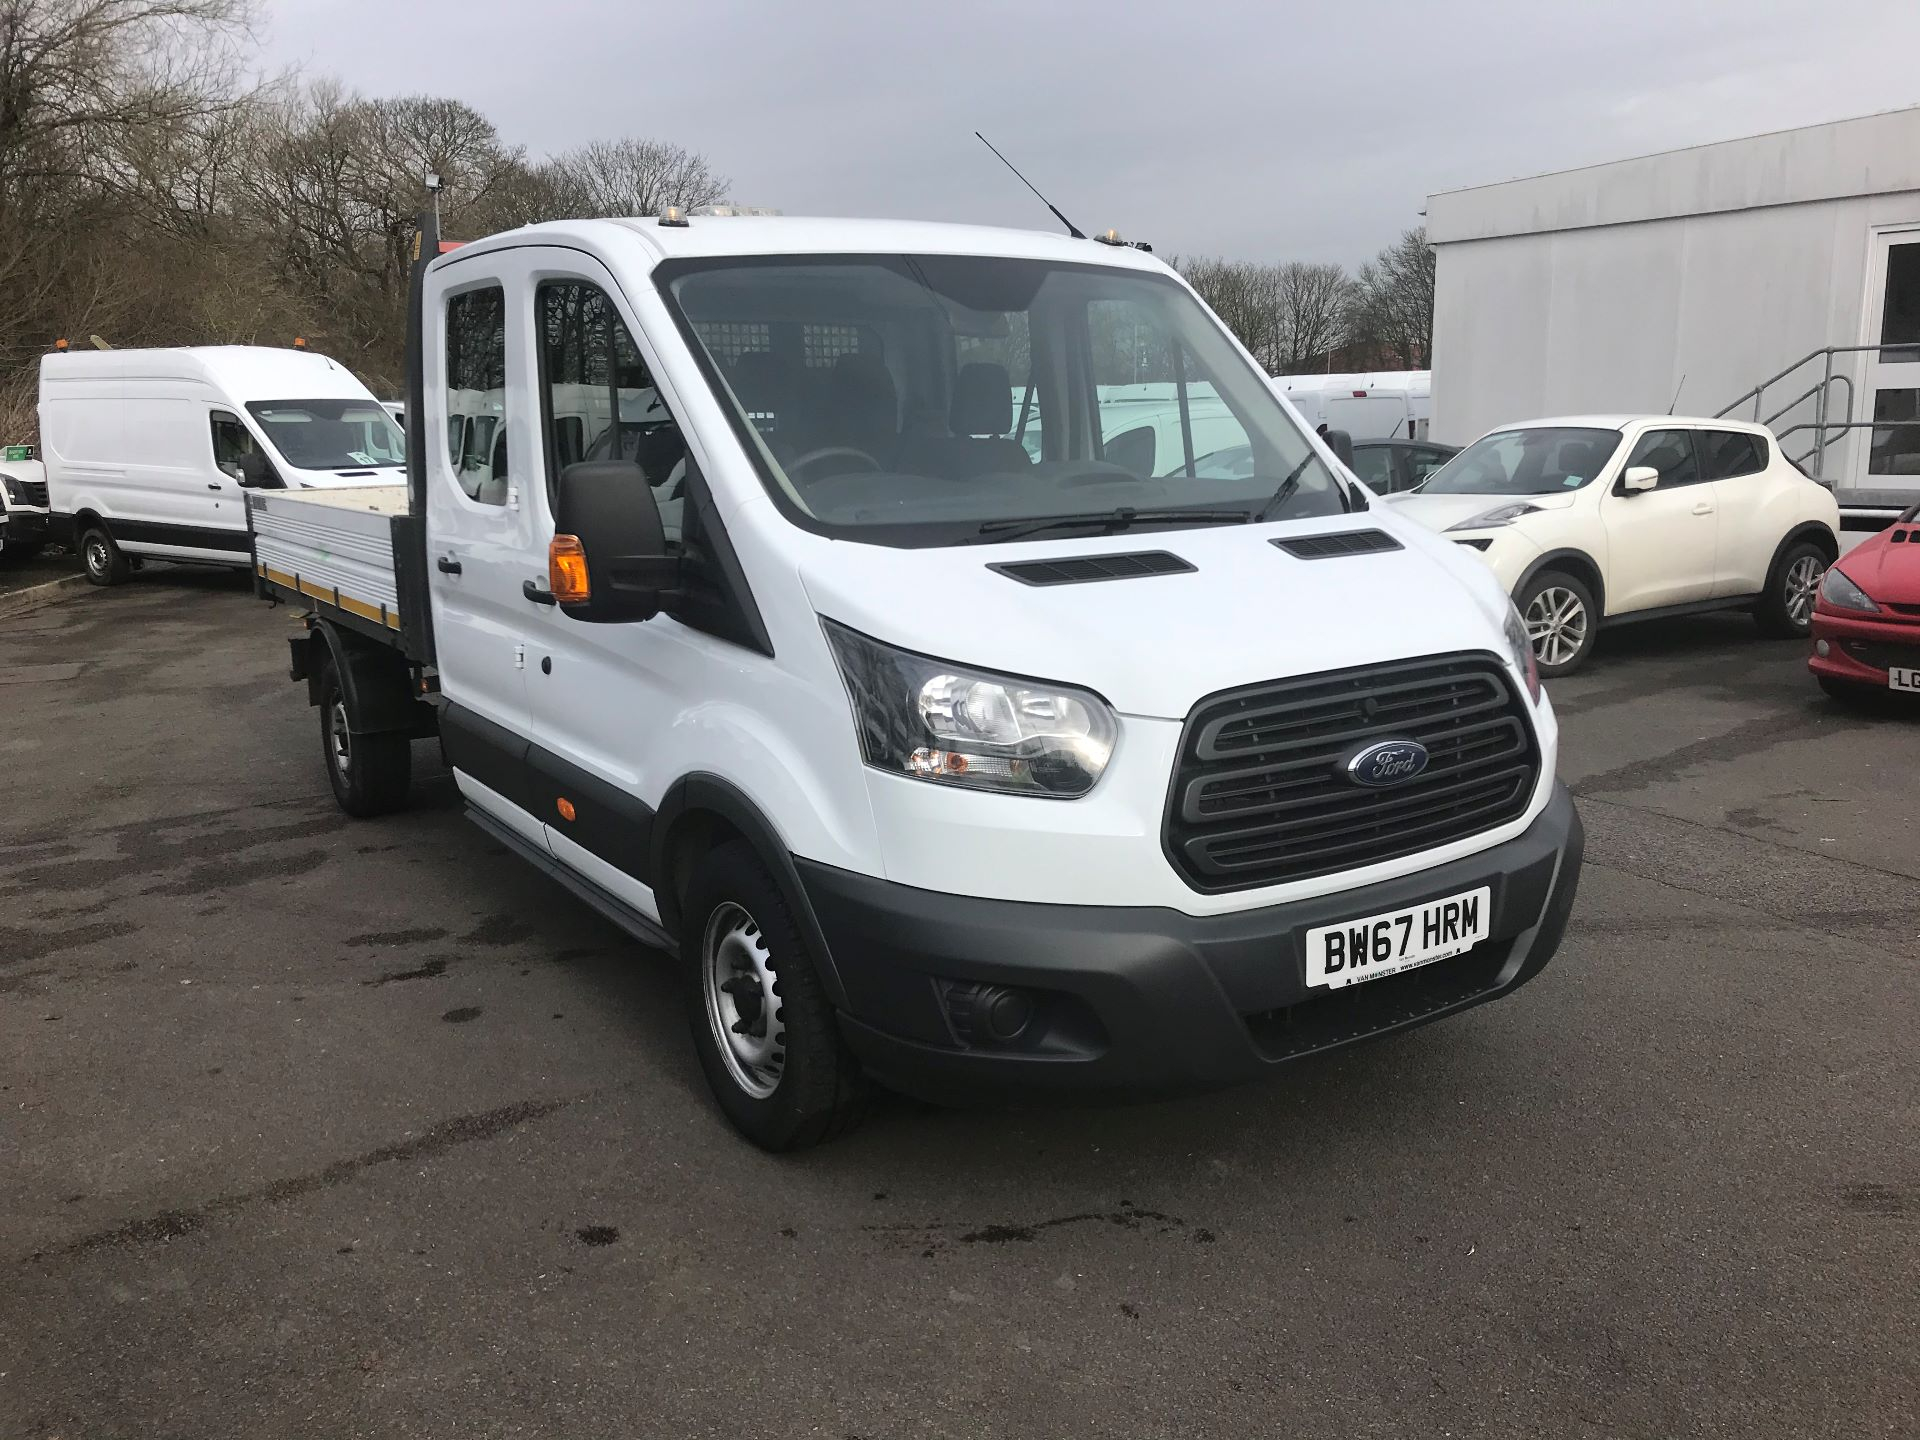 2018 Ford Transit 2.0 Tdci 130Ps 'One Stop' D/Cab Tipper [1 Way] Euro 6 (BW67HRM)